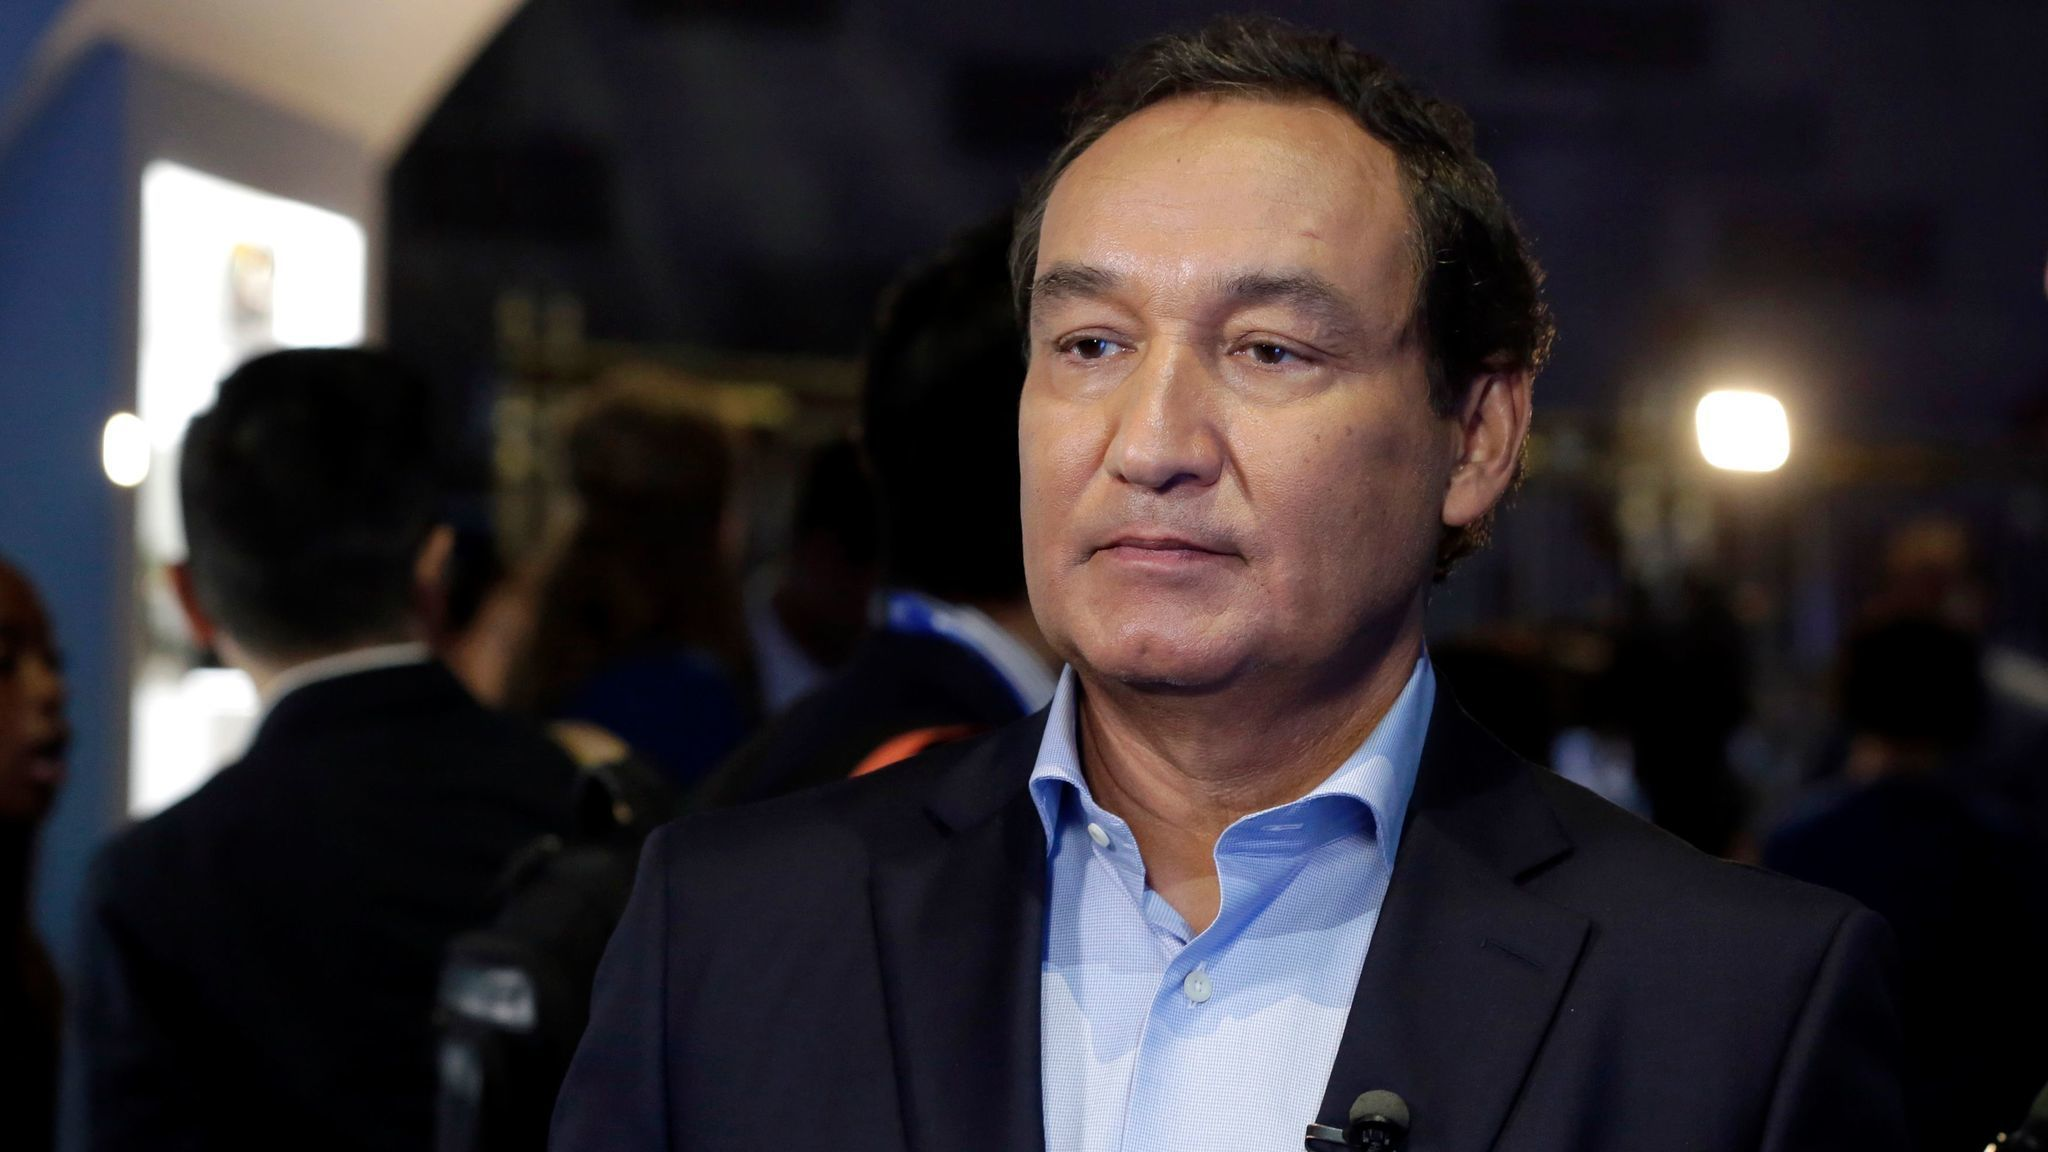 United CEO Oscar Munoz defends employees in letter   Chicago Tribune